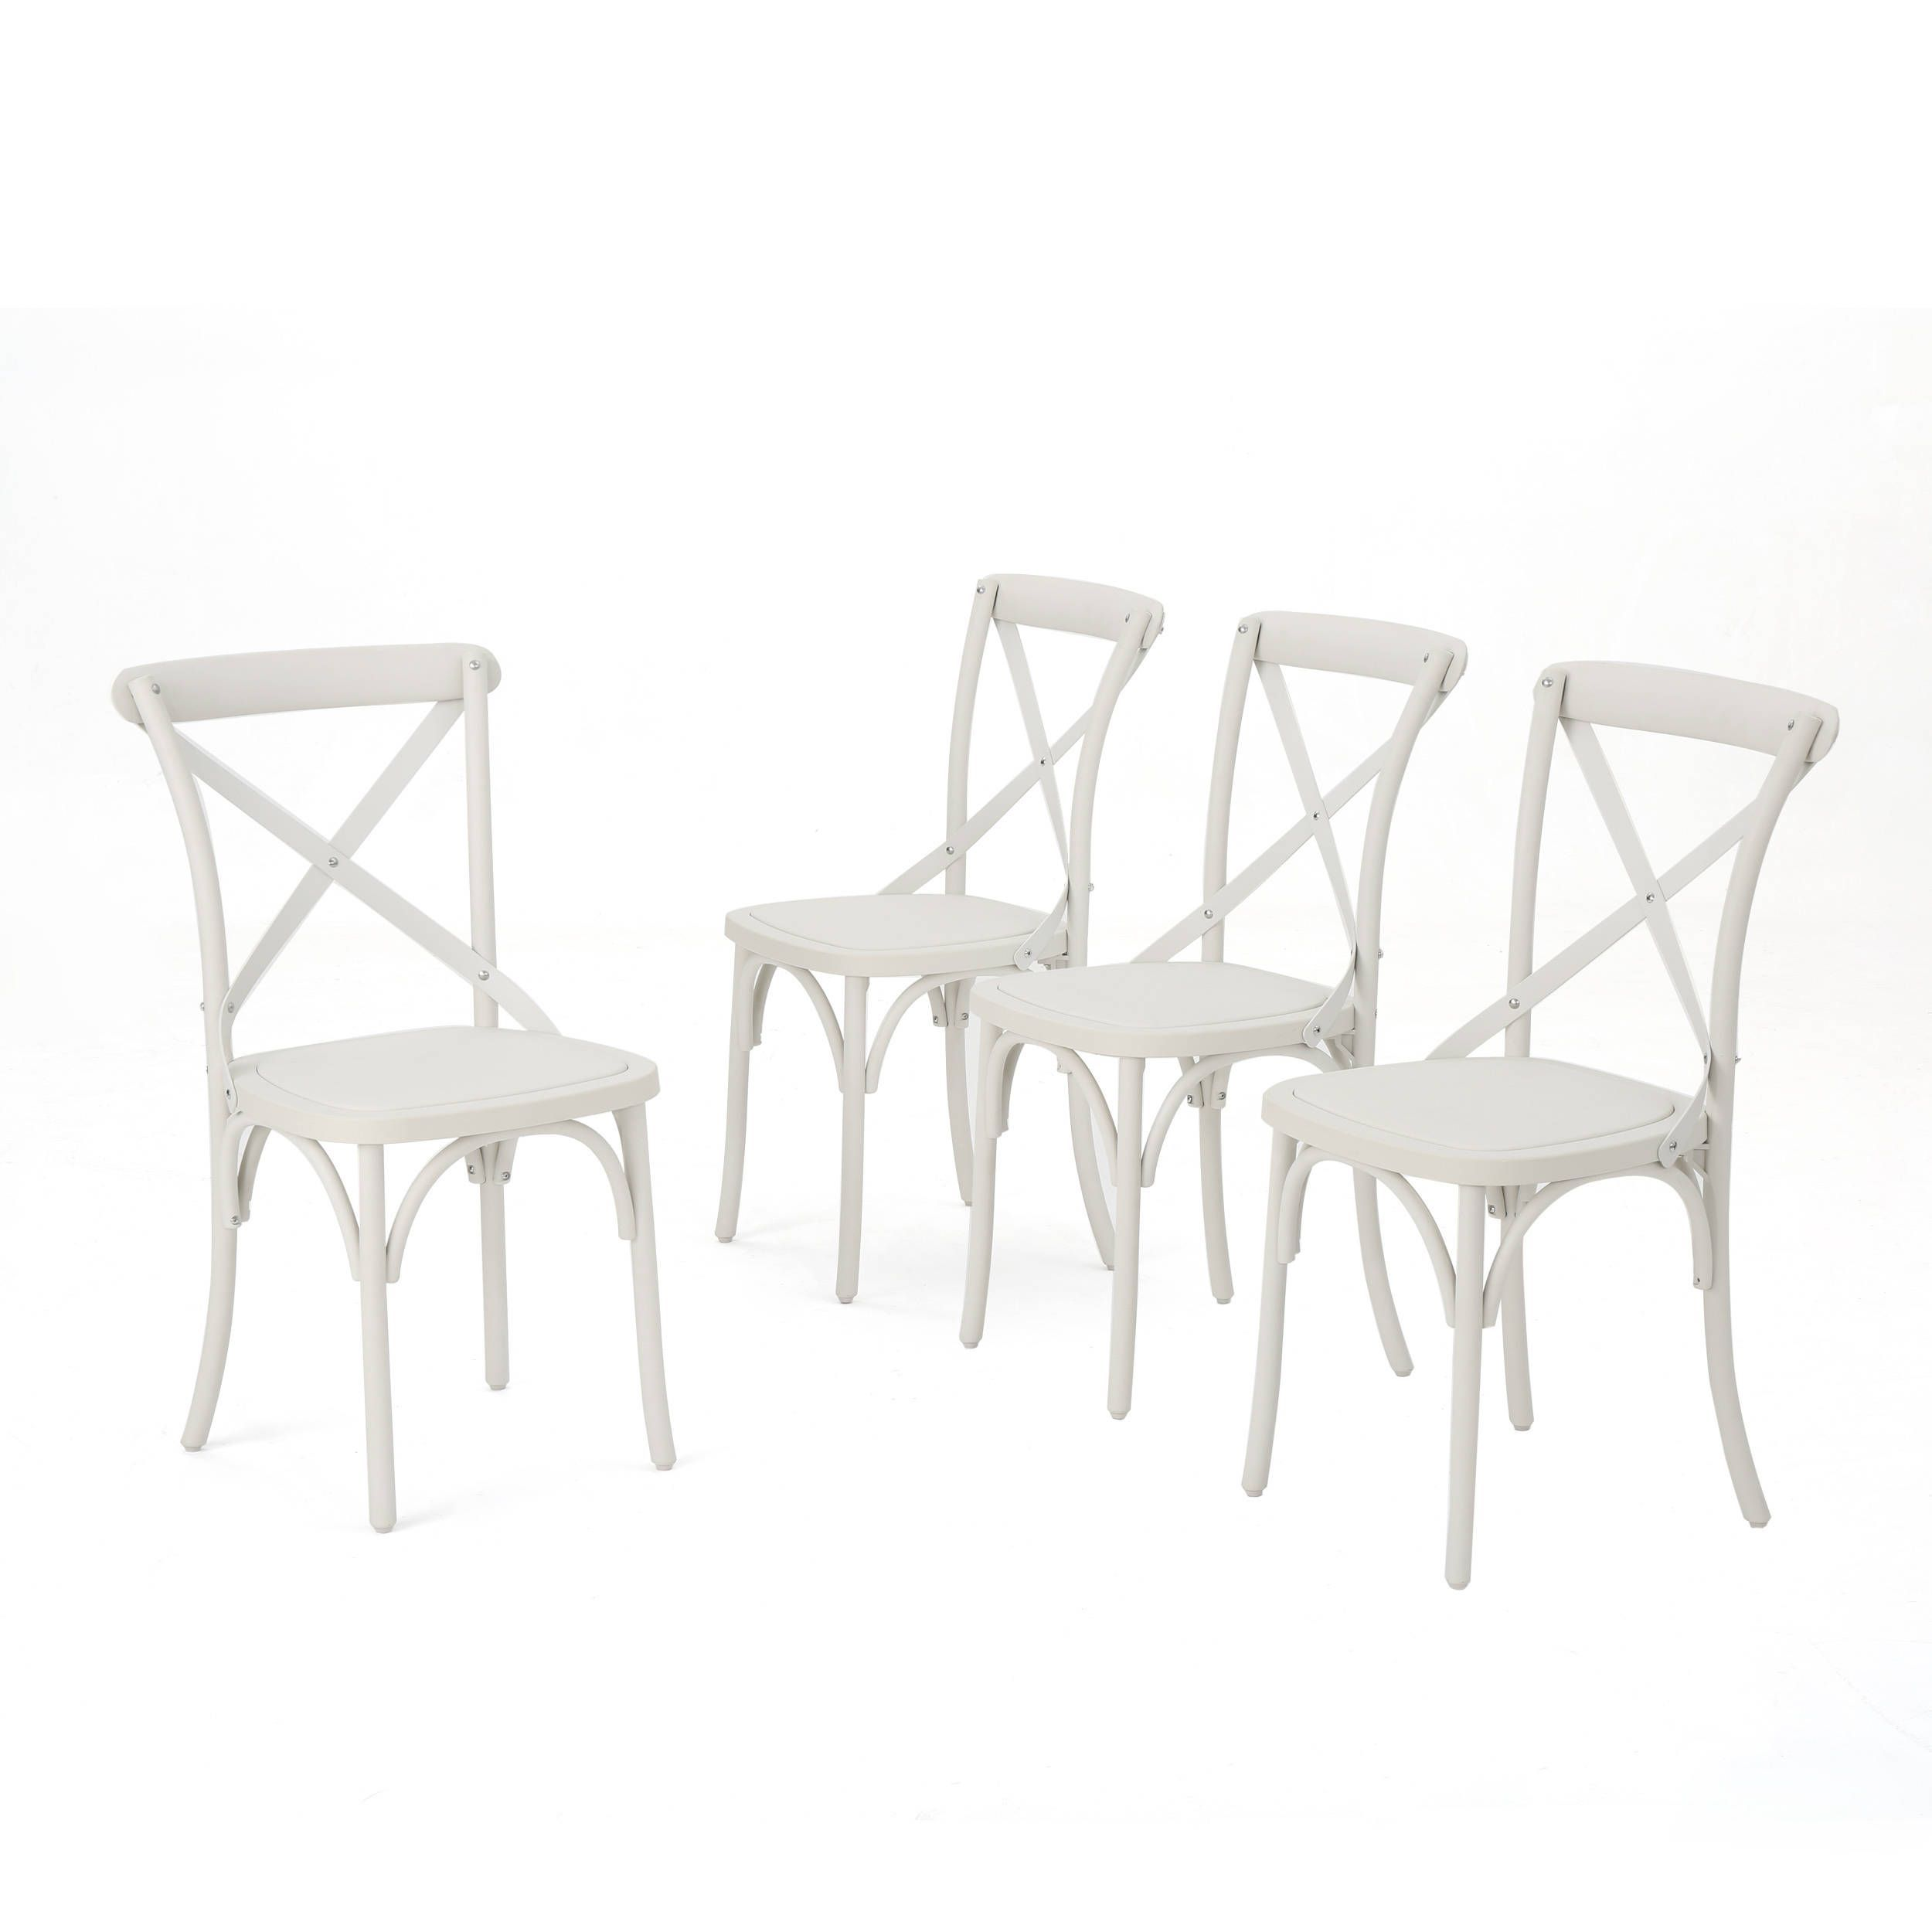 Magnificent Danish Outdoor Farmhouse Dining Chair Set Of 4 By Spiritservingveterans Wood Chair Design Ideas Spiritservingveteransorg